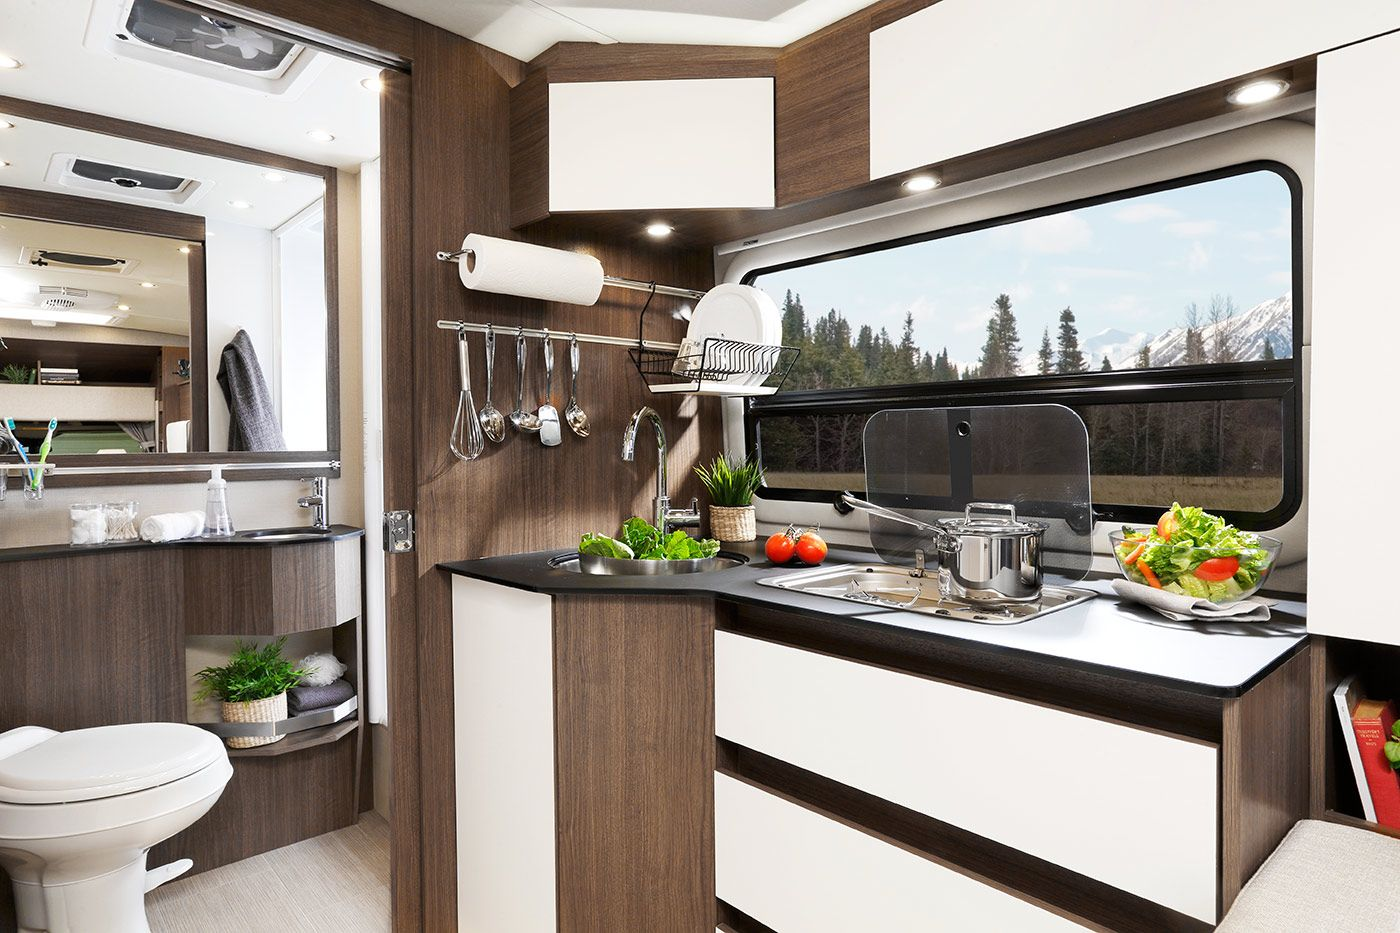 2017 Wonder W24MB Interior Featuring Handle Free Fenix NTM Doors And Walnut Colored Cabinetry